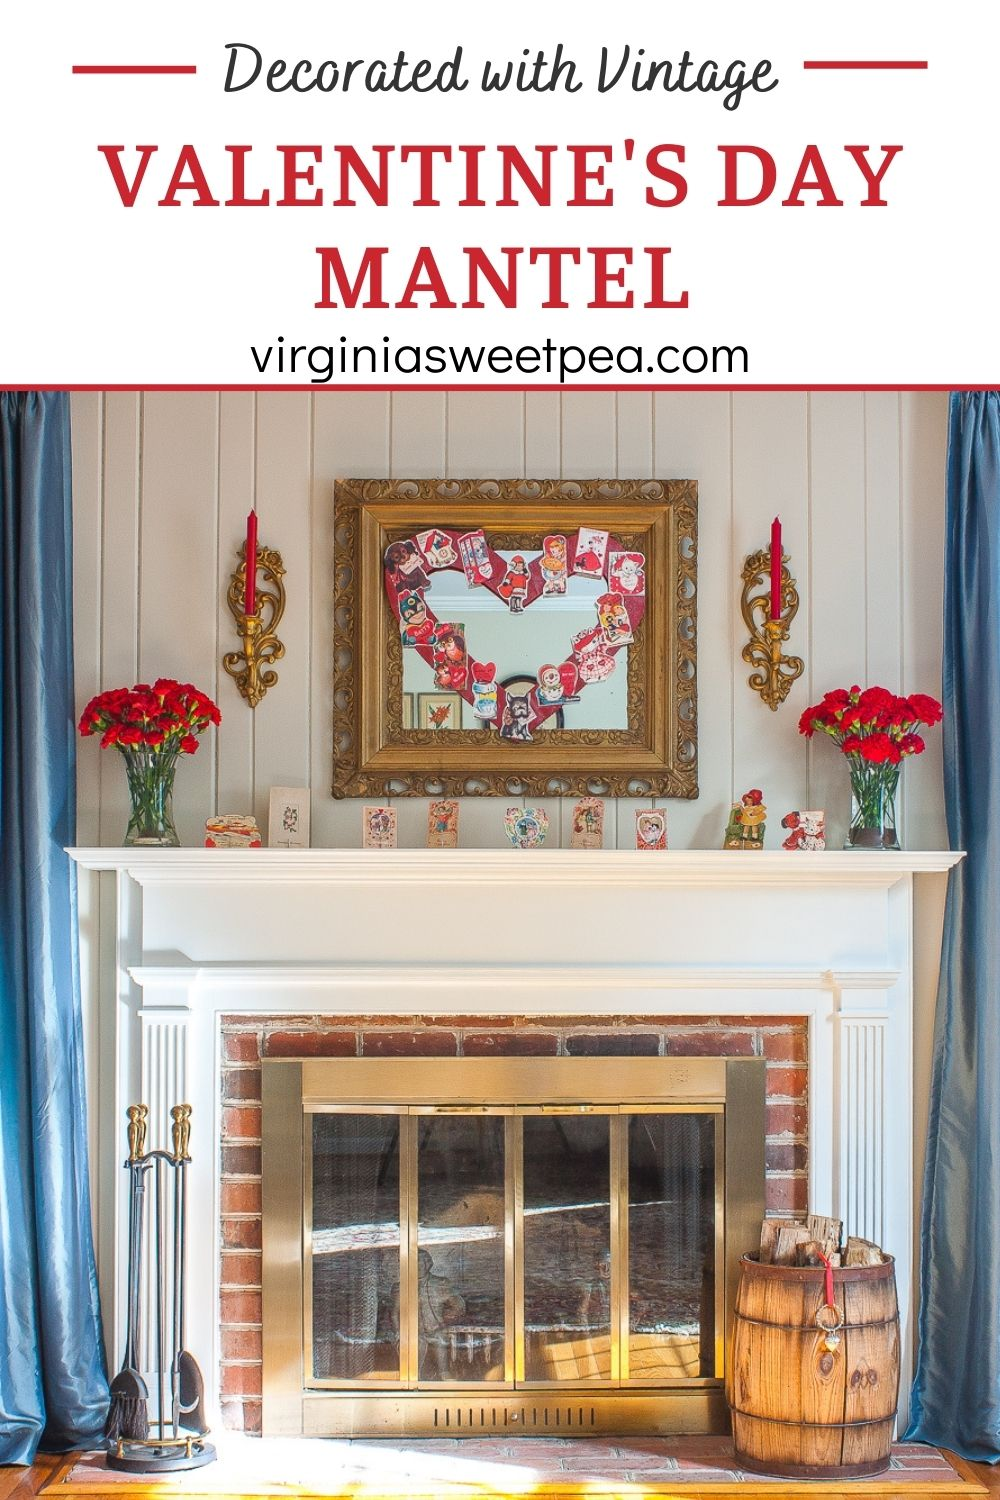 Decorated with Vintage Valentine's Day Mantel